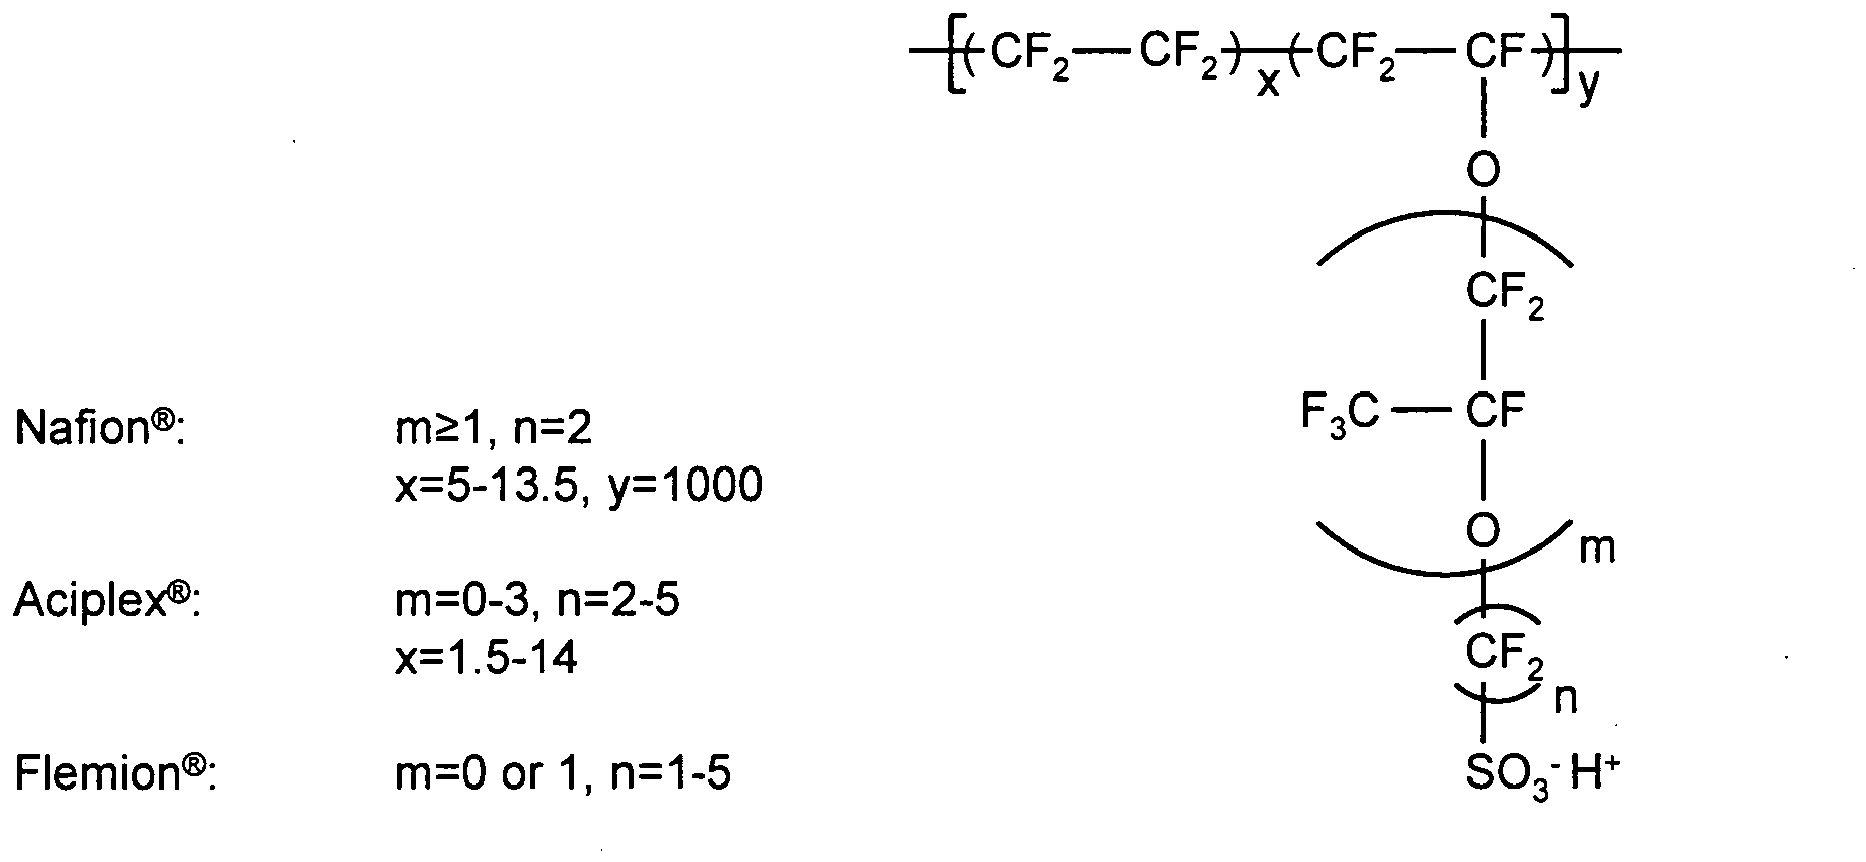 Ep2500393a1 Use Of An Ionic Fluoropolymer As Antistatic